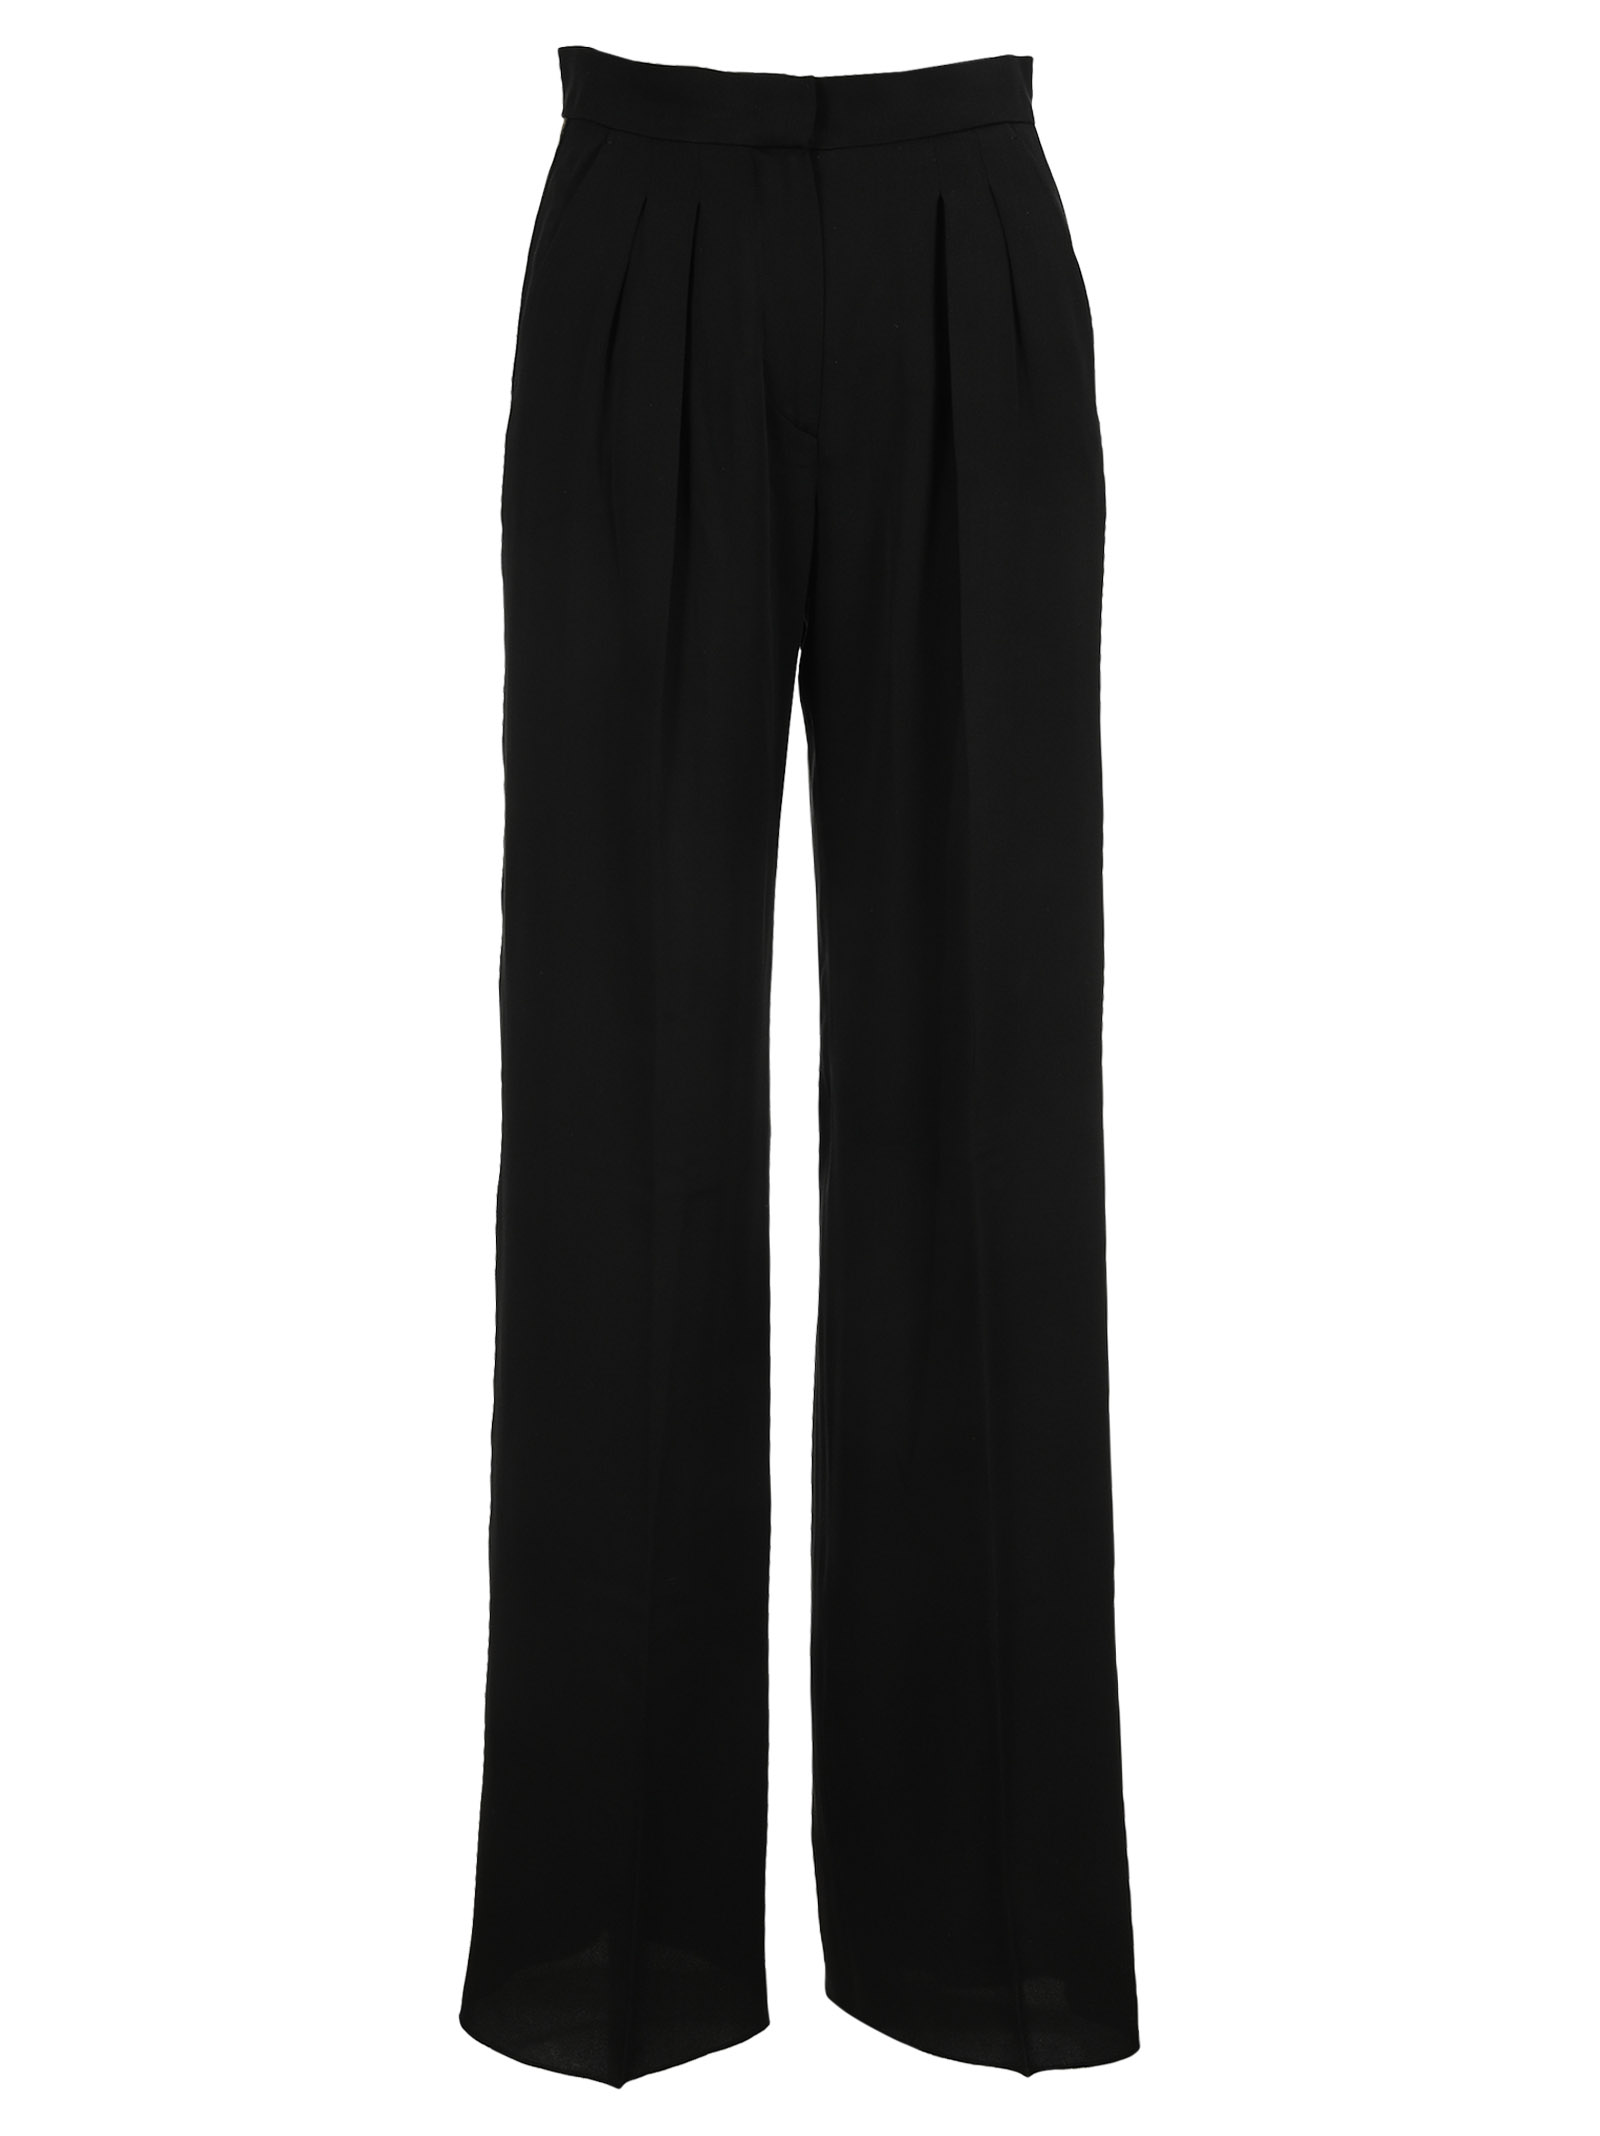 Max Mara HIGH WAISTED CONTRASTING TRIM TROUSERS